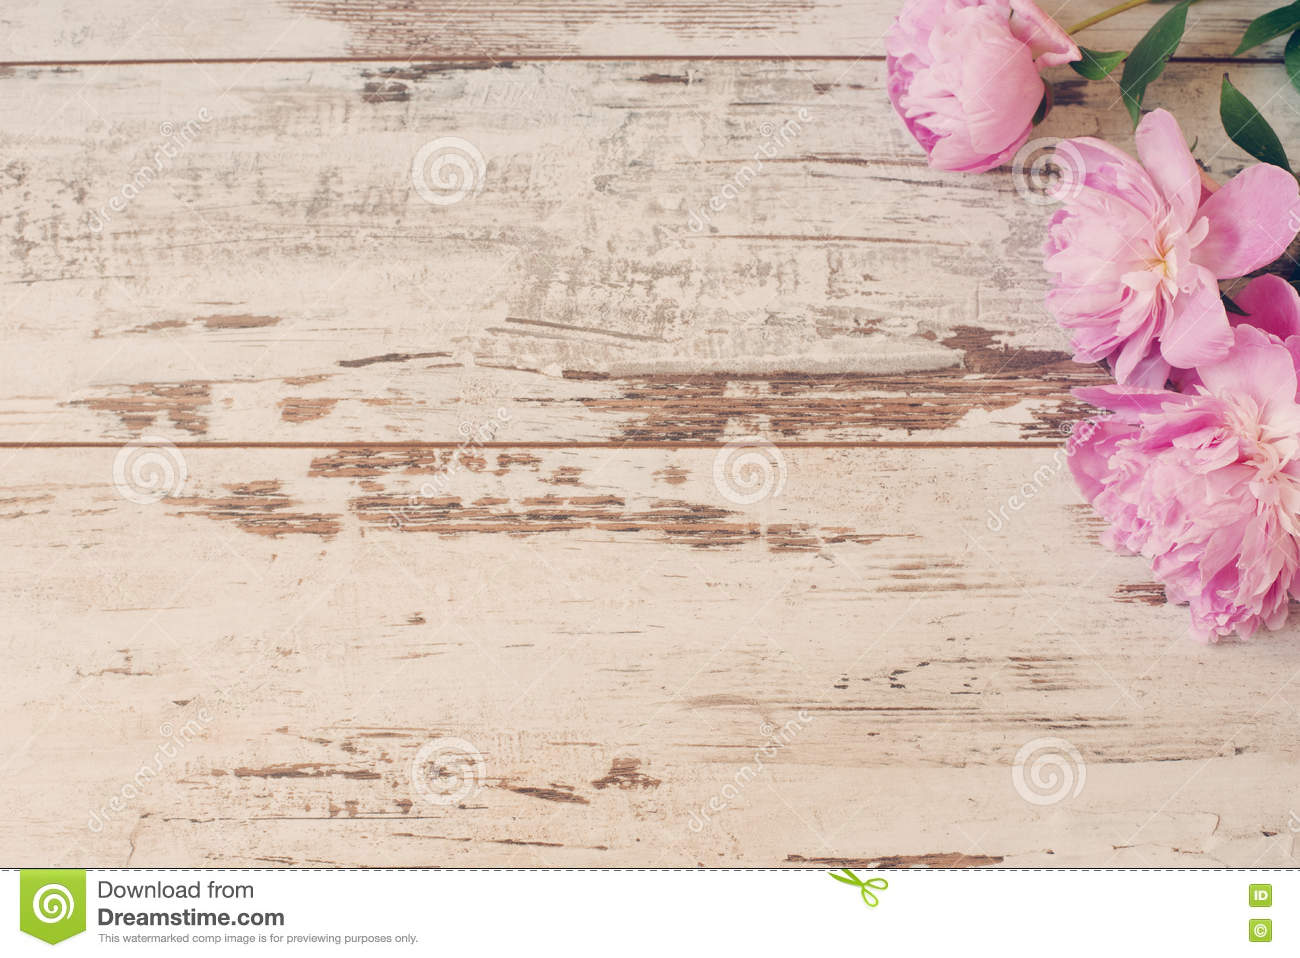 Stunning Pink Peonies On White Light Rustic Wooden Background